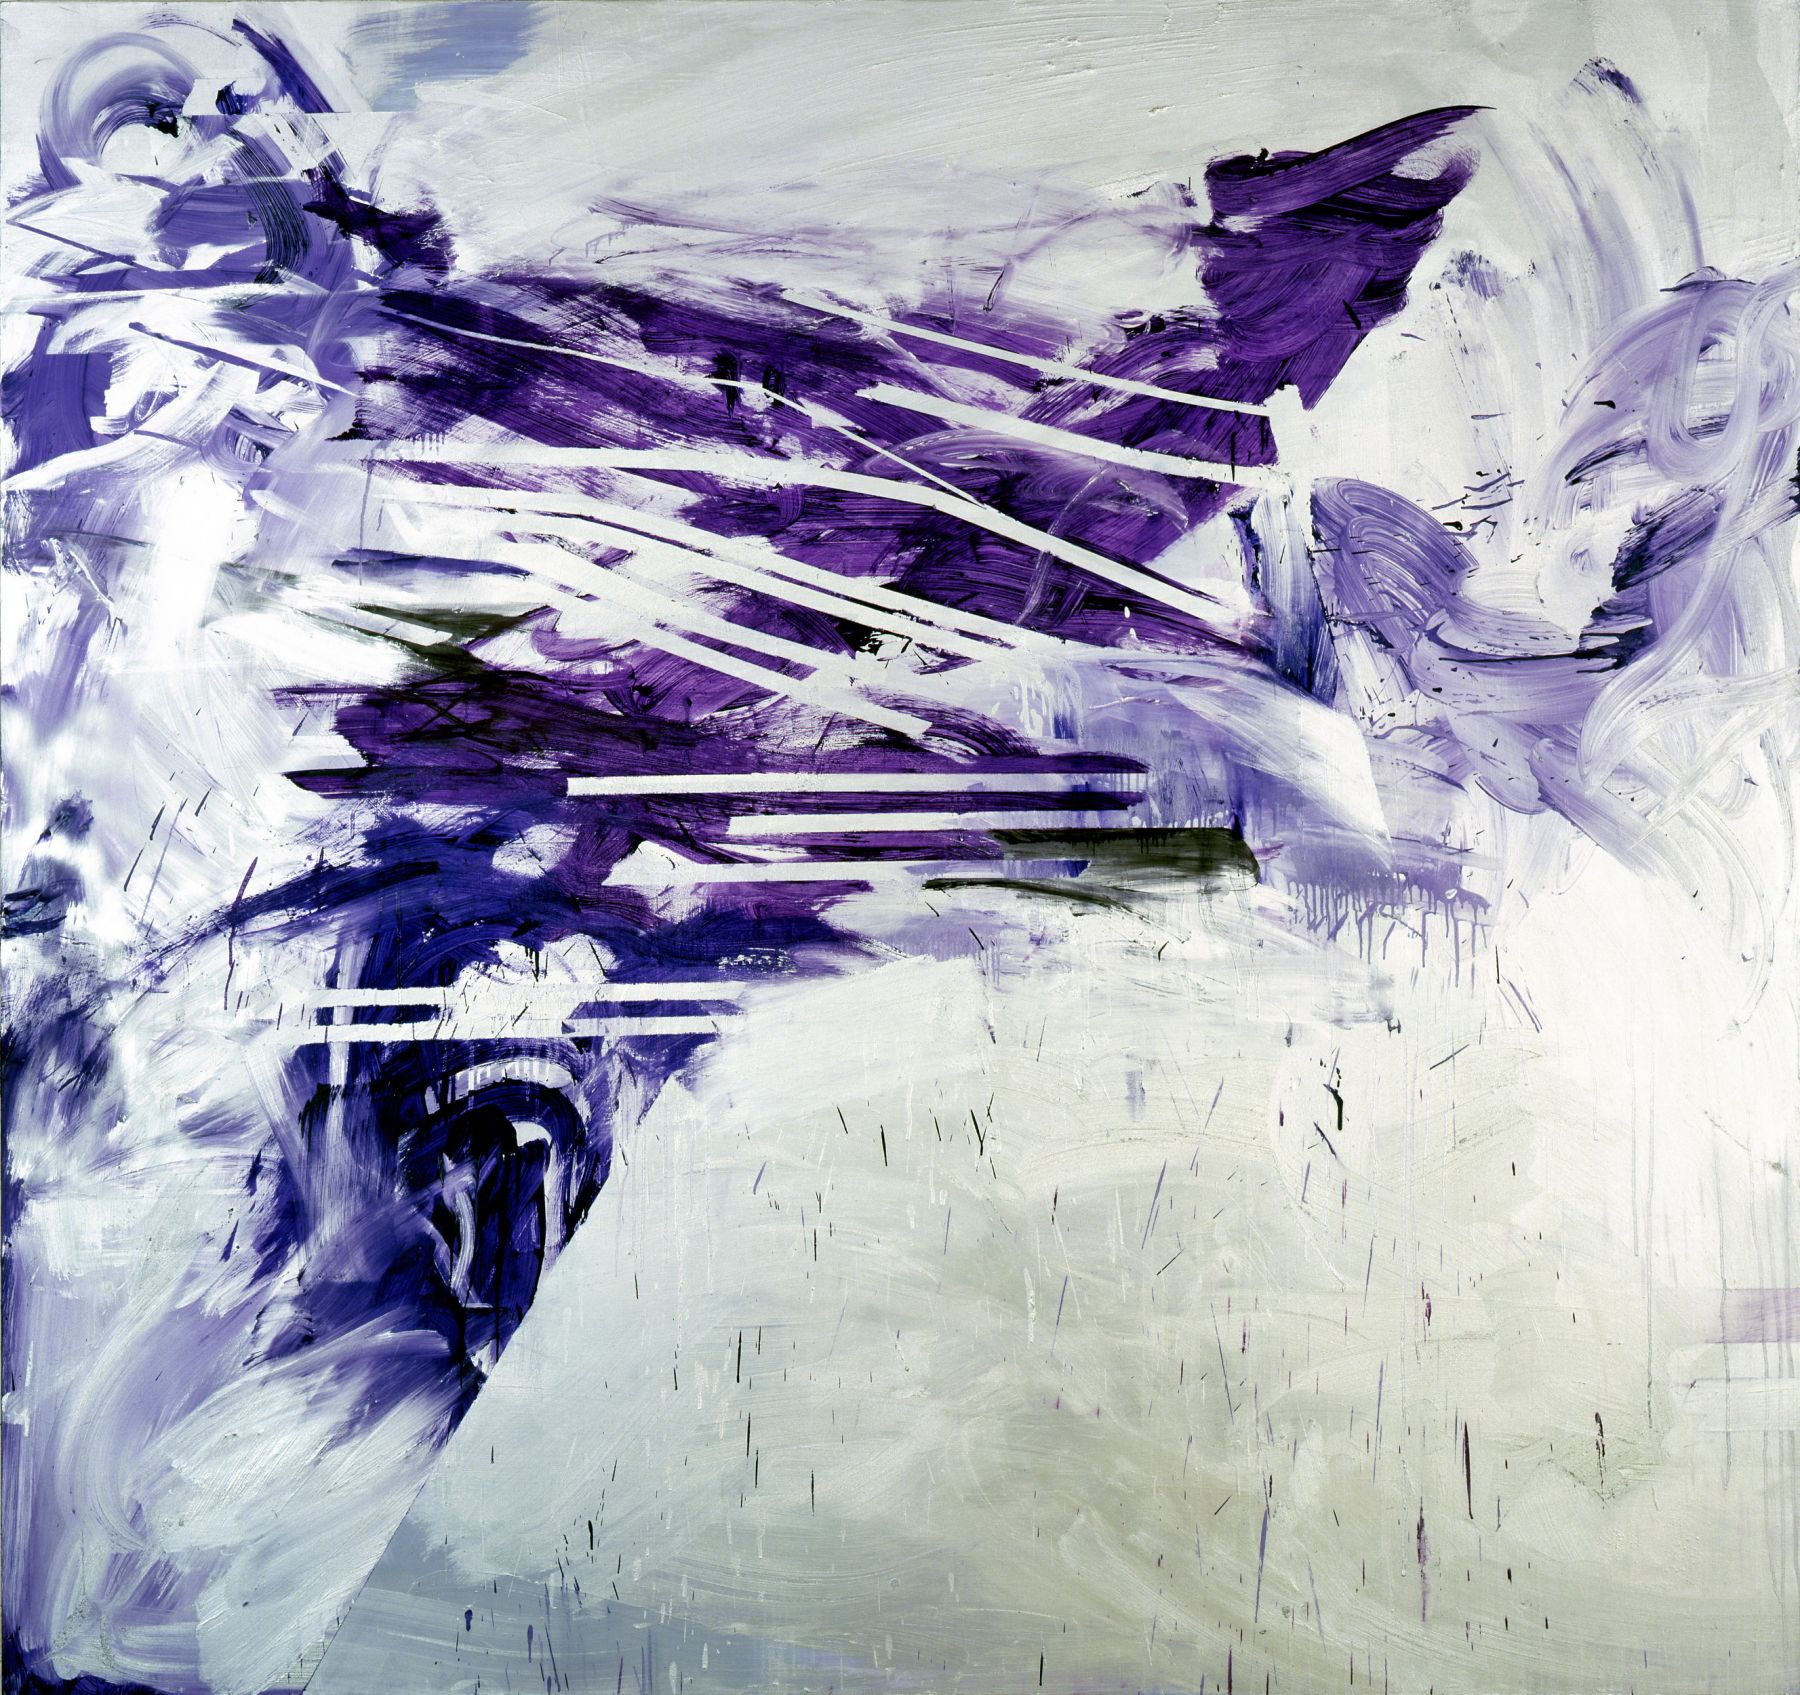 Dark Star, 2006, Oil and enamel on linen, 90 x 96 inches